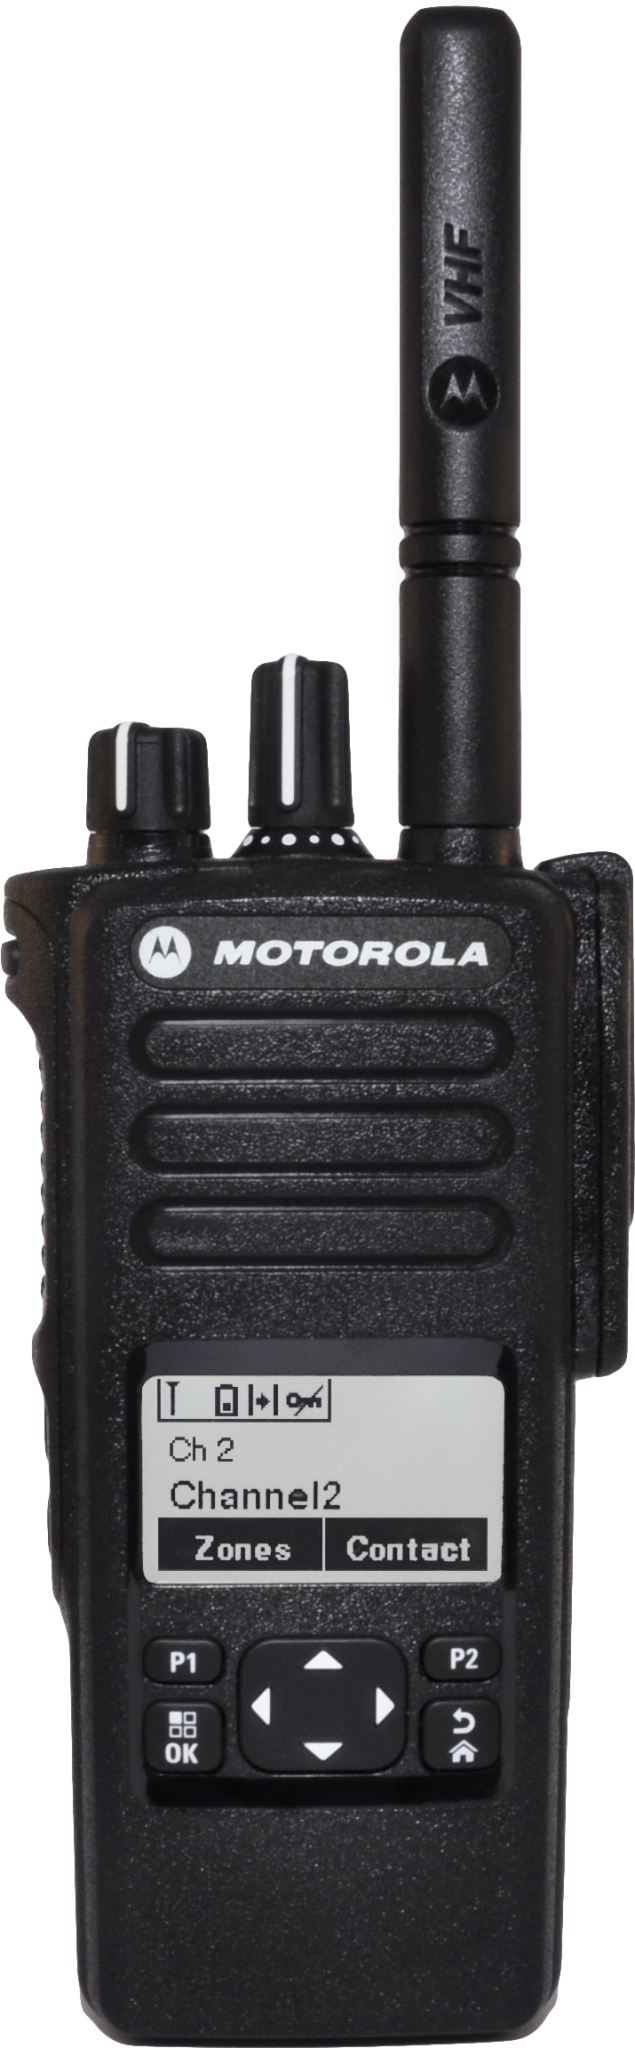 Motorola DP4600e featured image